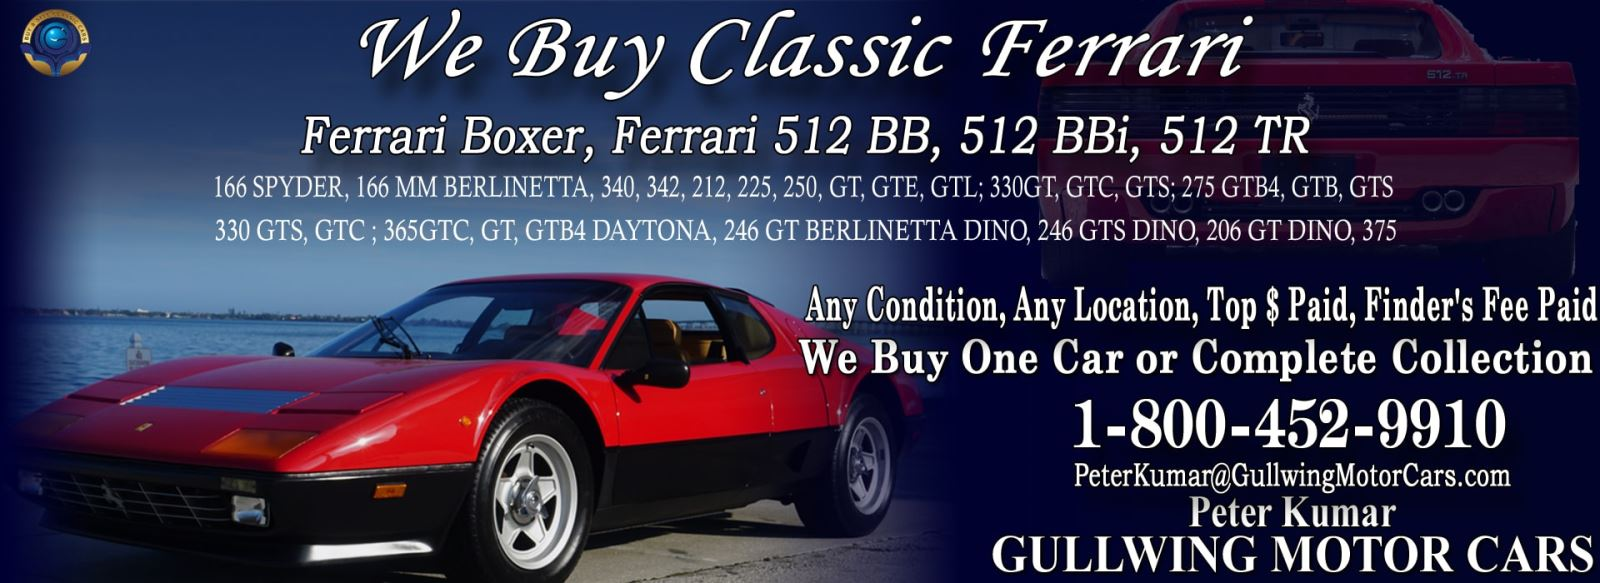 Classic Ferrari 512 for sale, we buy vintage Ferrari 512. Call Peter Kumar. Gullwing Motor